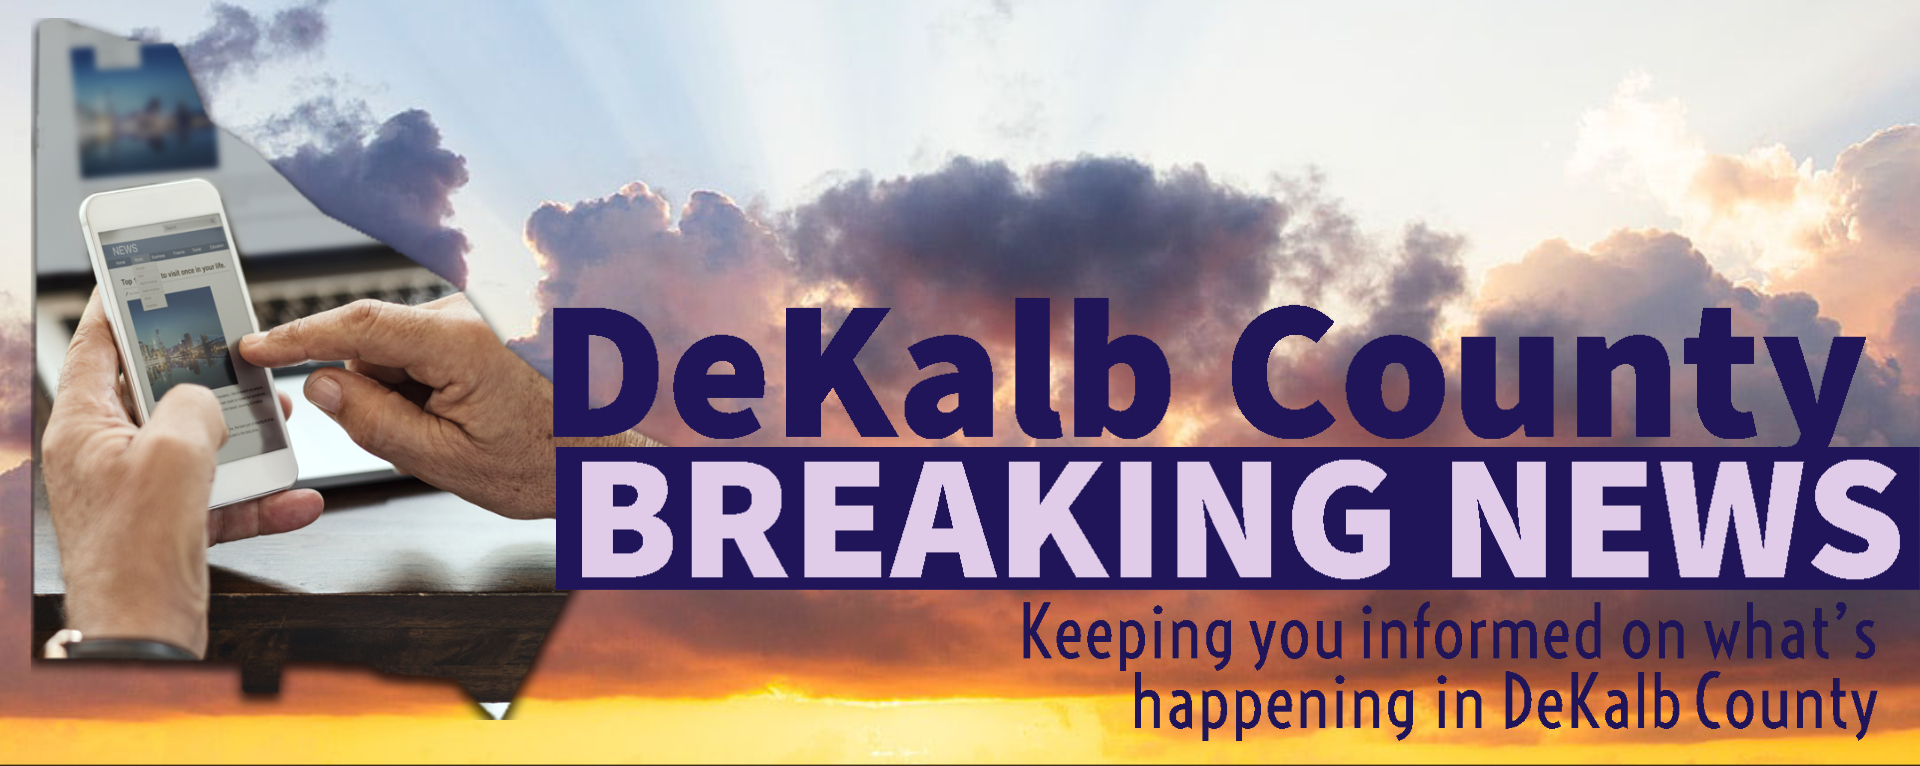 Breaking News for DeKalb County